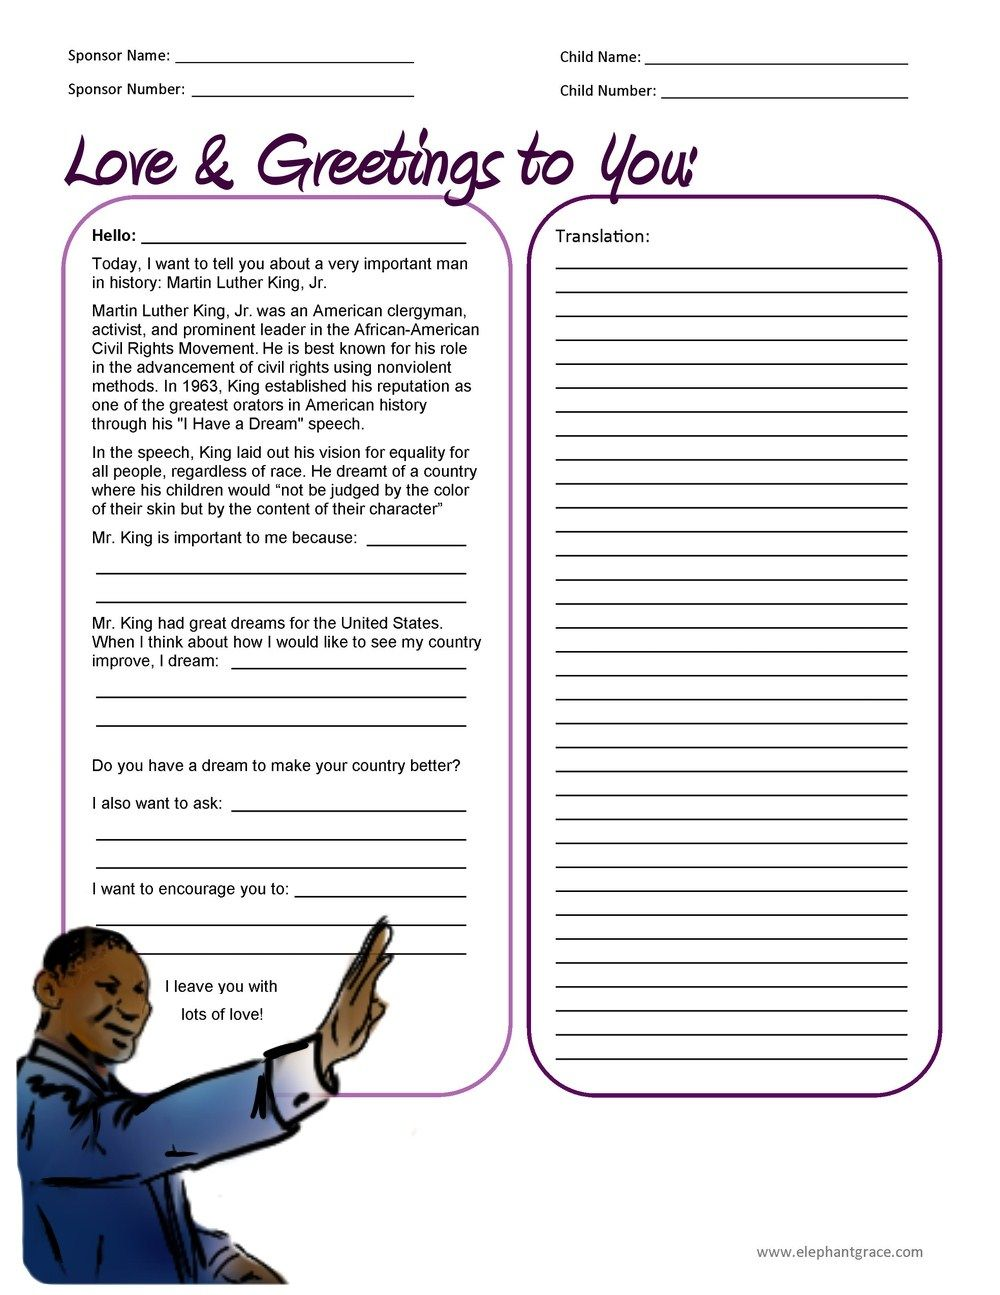 Martin Luther King Jr Letter Writing Template For Compassion